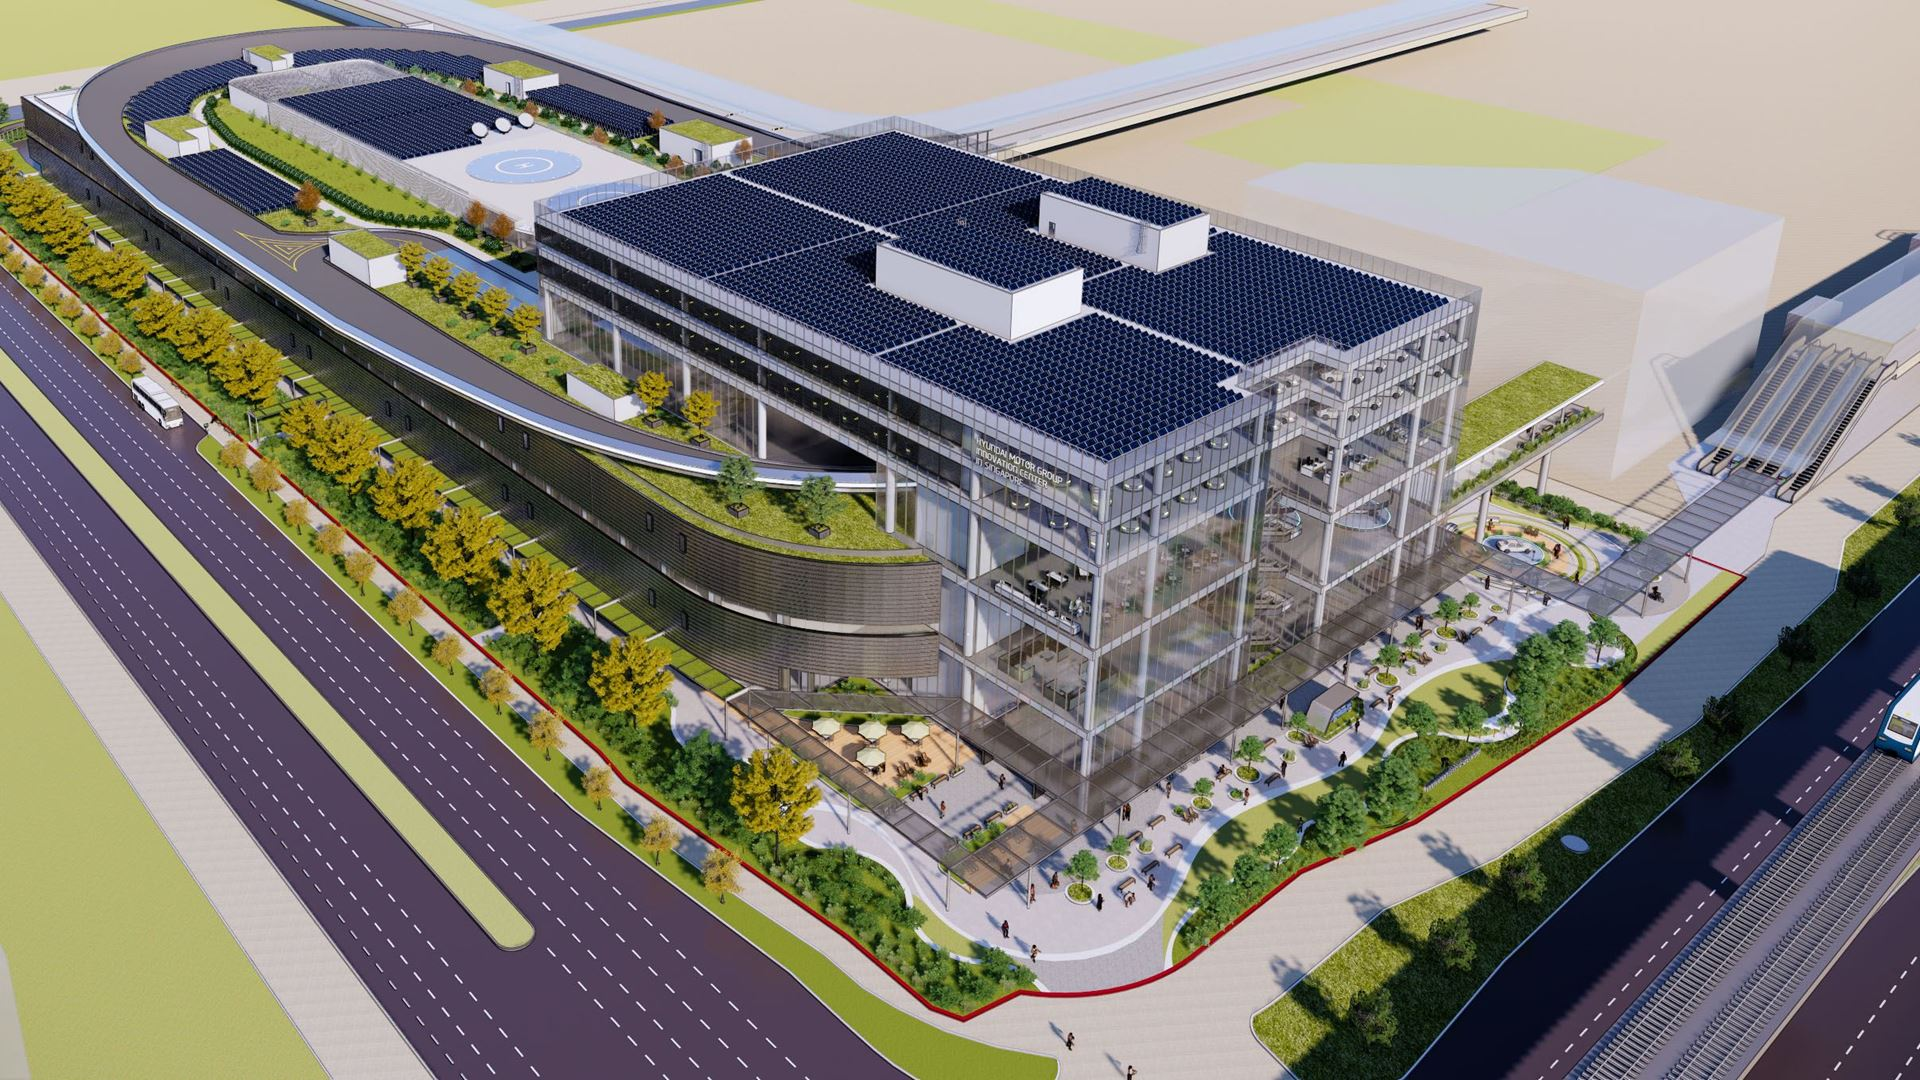 New Hyundai Motor Group Innovation Center in Singapore to Transform Customer Experience through Future Mobility R&D - Image 2